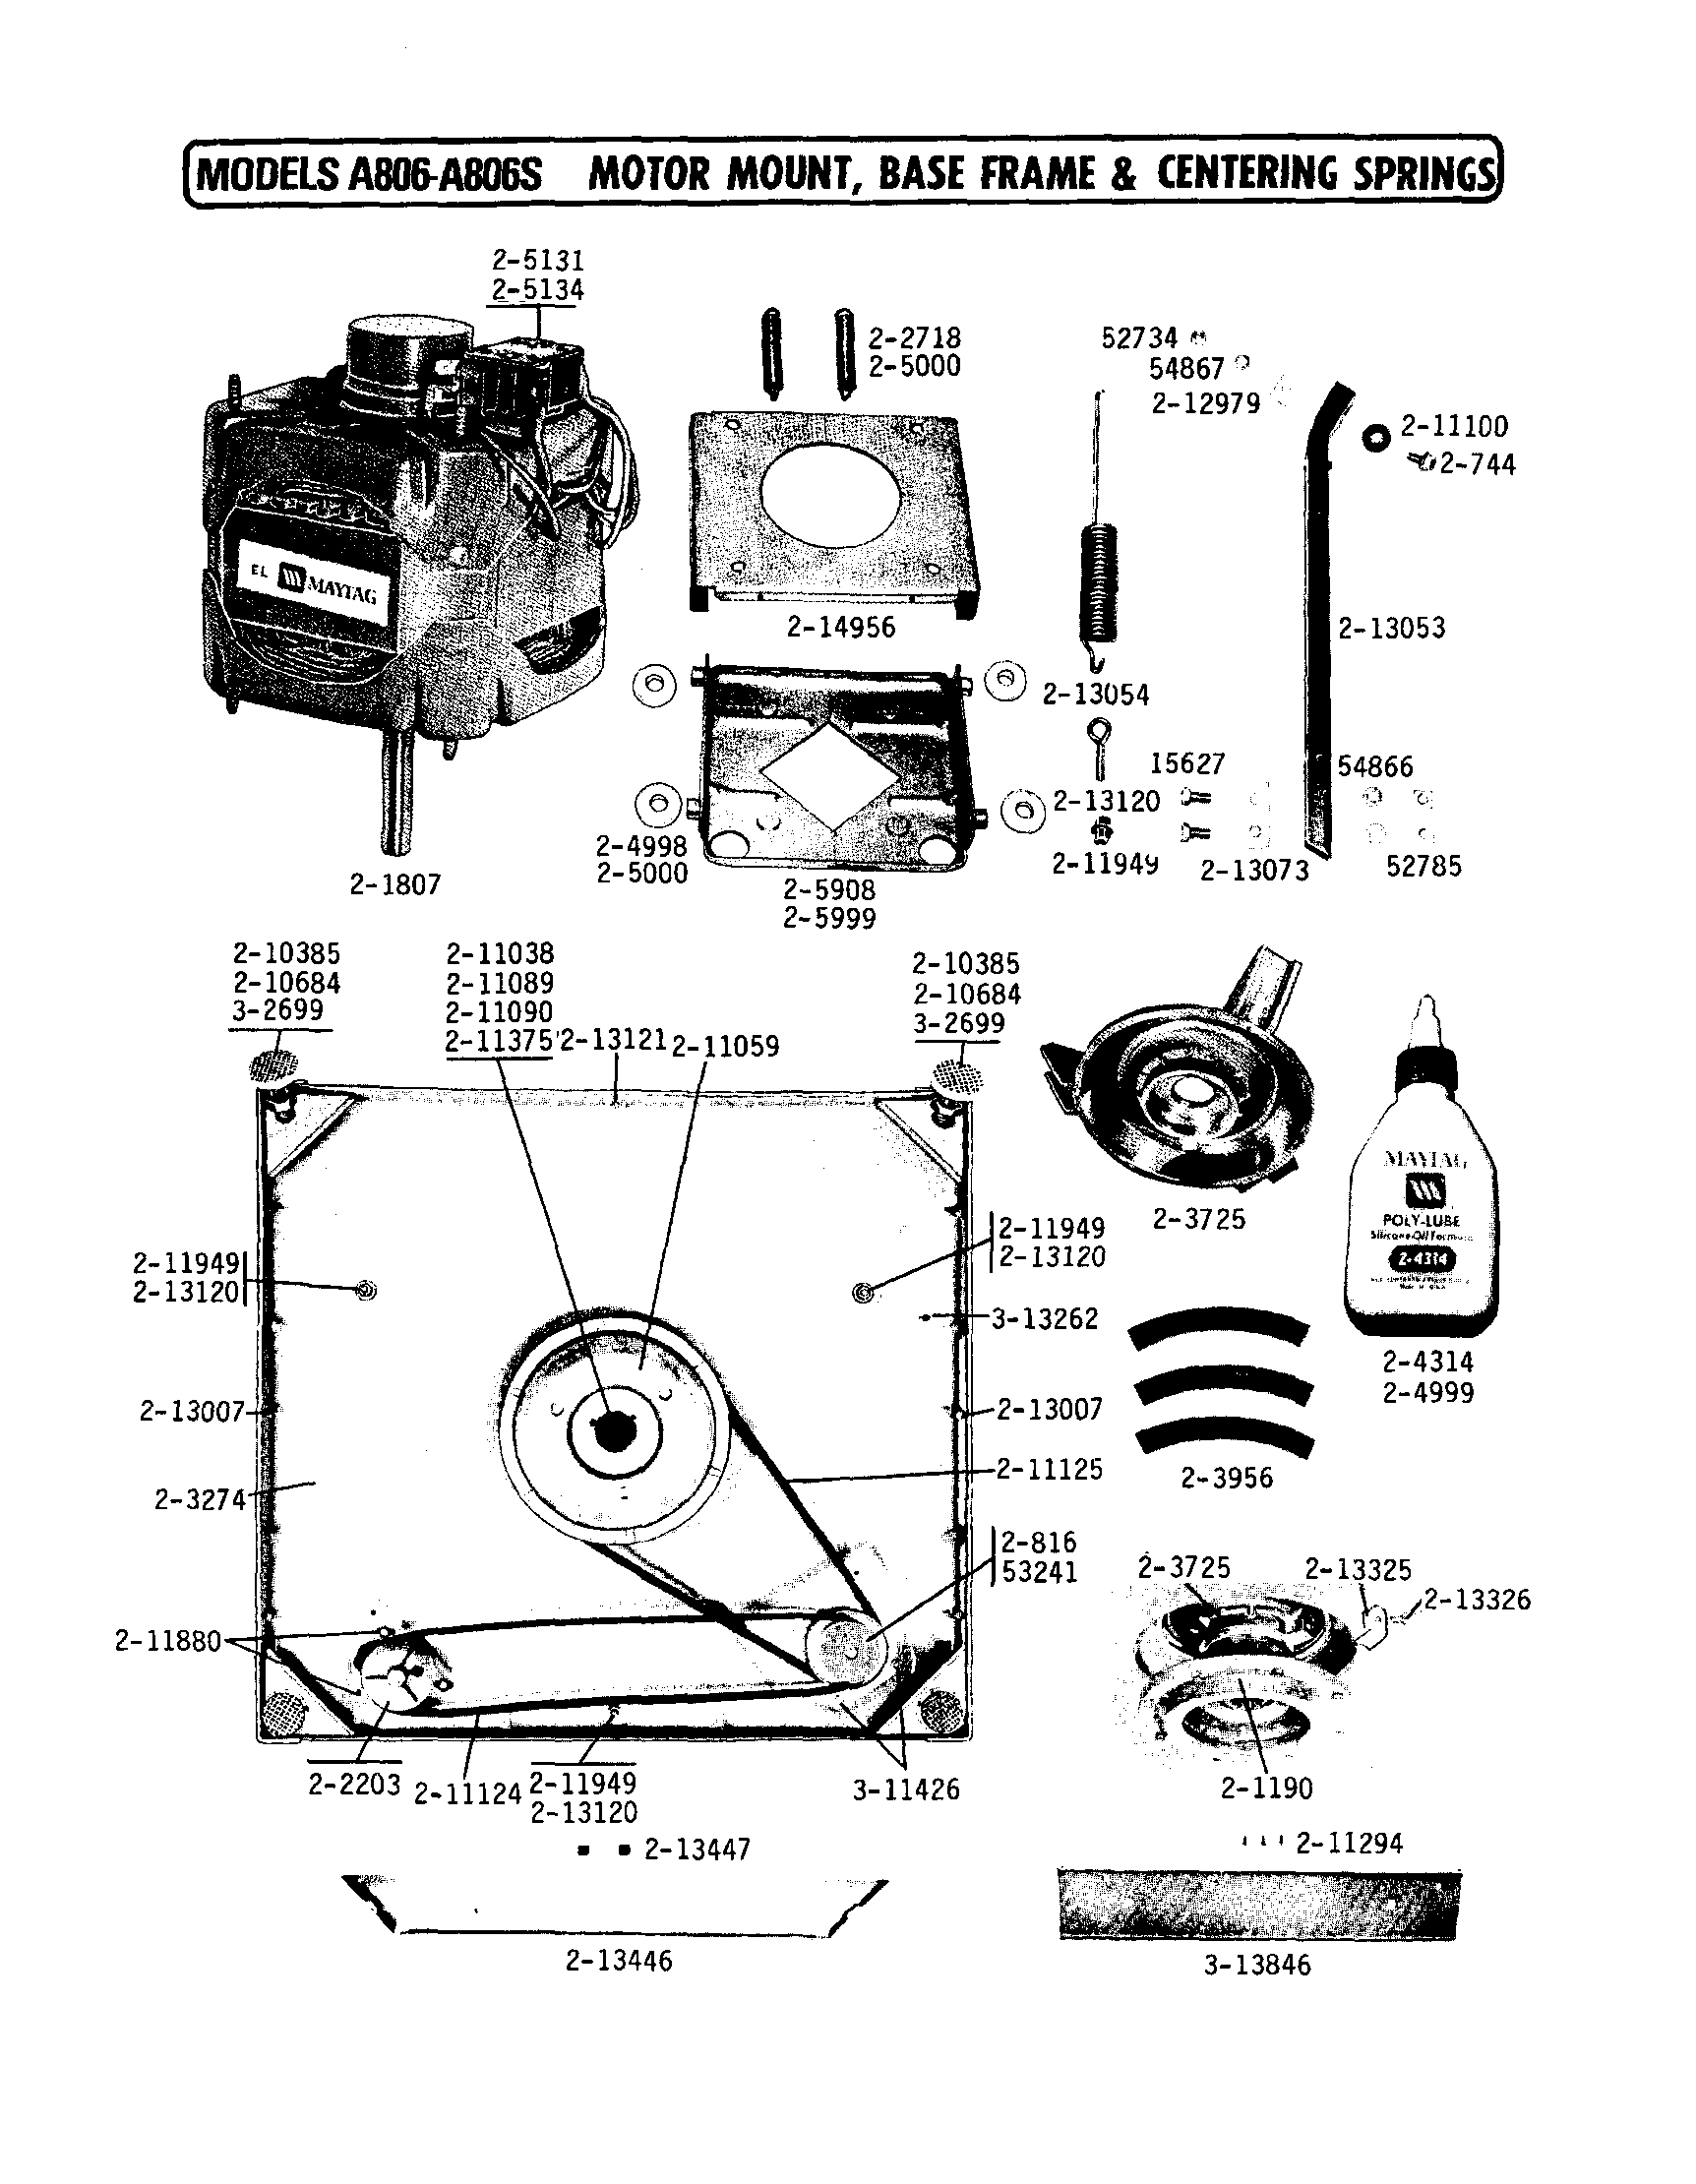 Diagram Of Maytag Washer Parts Agitator Wiring Diagrams For Dummies And List Washerparts Model Mvwc6esww1 A806 Timer Stove Clocks Appliance Timers Rh Appliancetimers Ca 1942 View